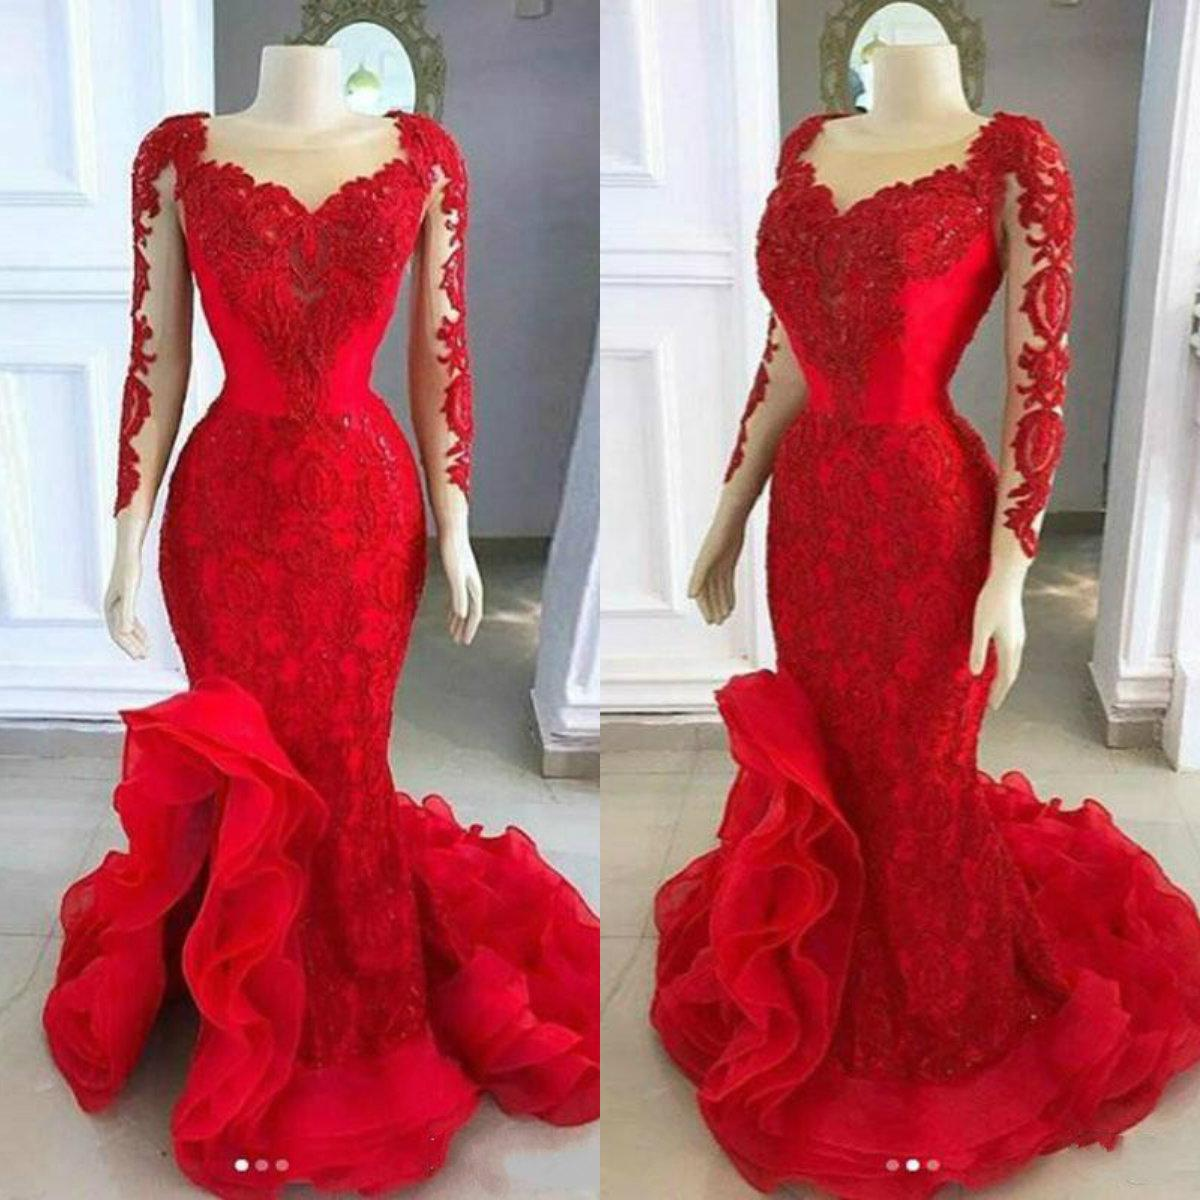 2020 Red Mermaid Vestidos Sheer decote Appliqued manga comprida vestido de baile low split Sweep Trem árabe formal do partido Vestidos